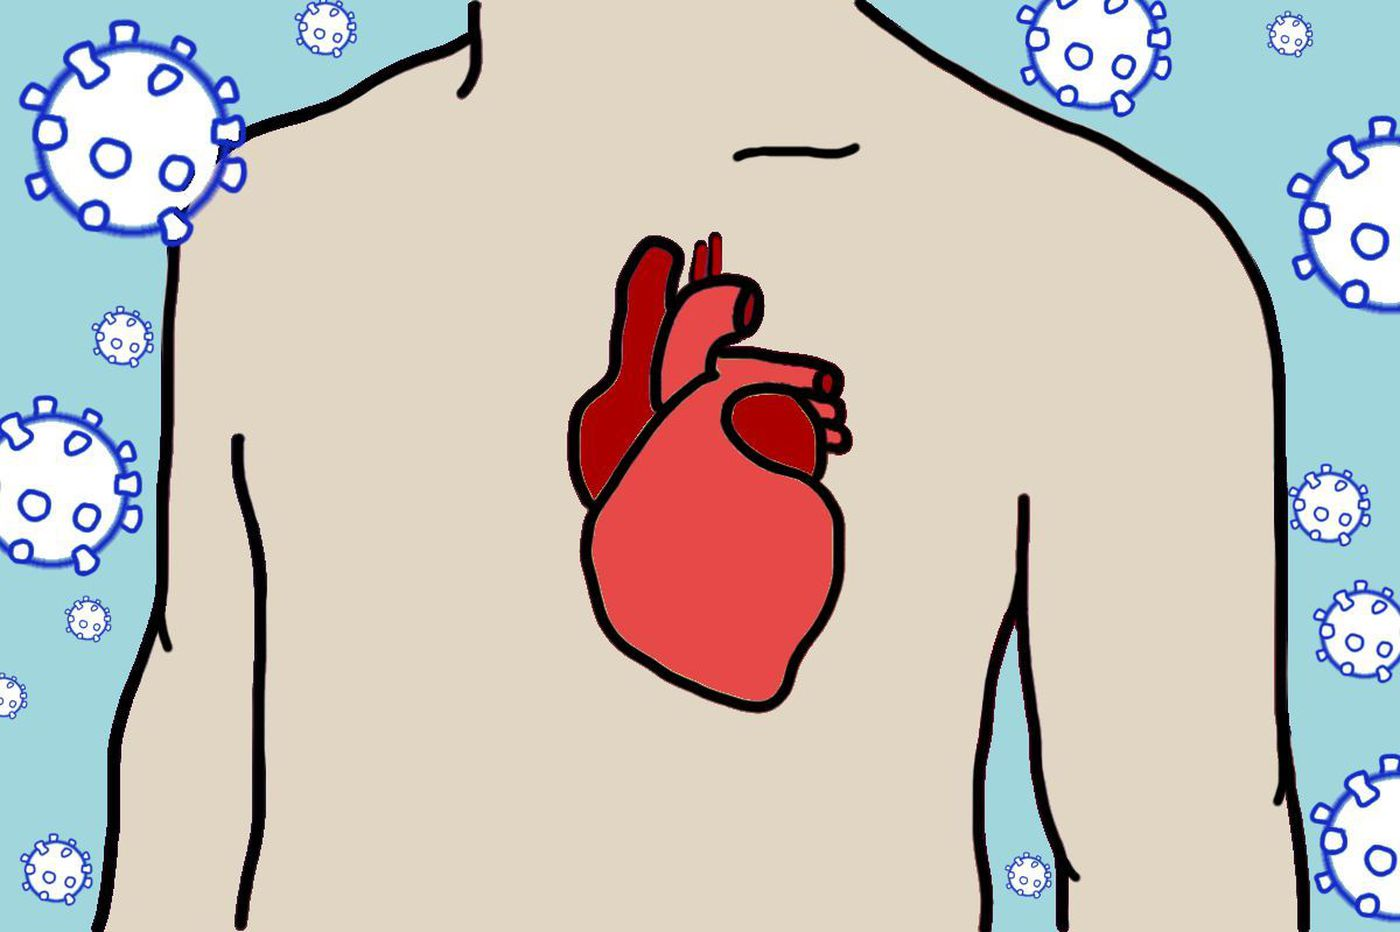 COVID-19 can stop the heart, and a defibrillator may not help, Penn study finds